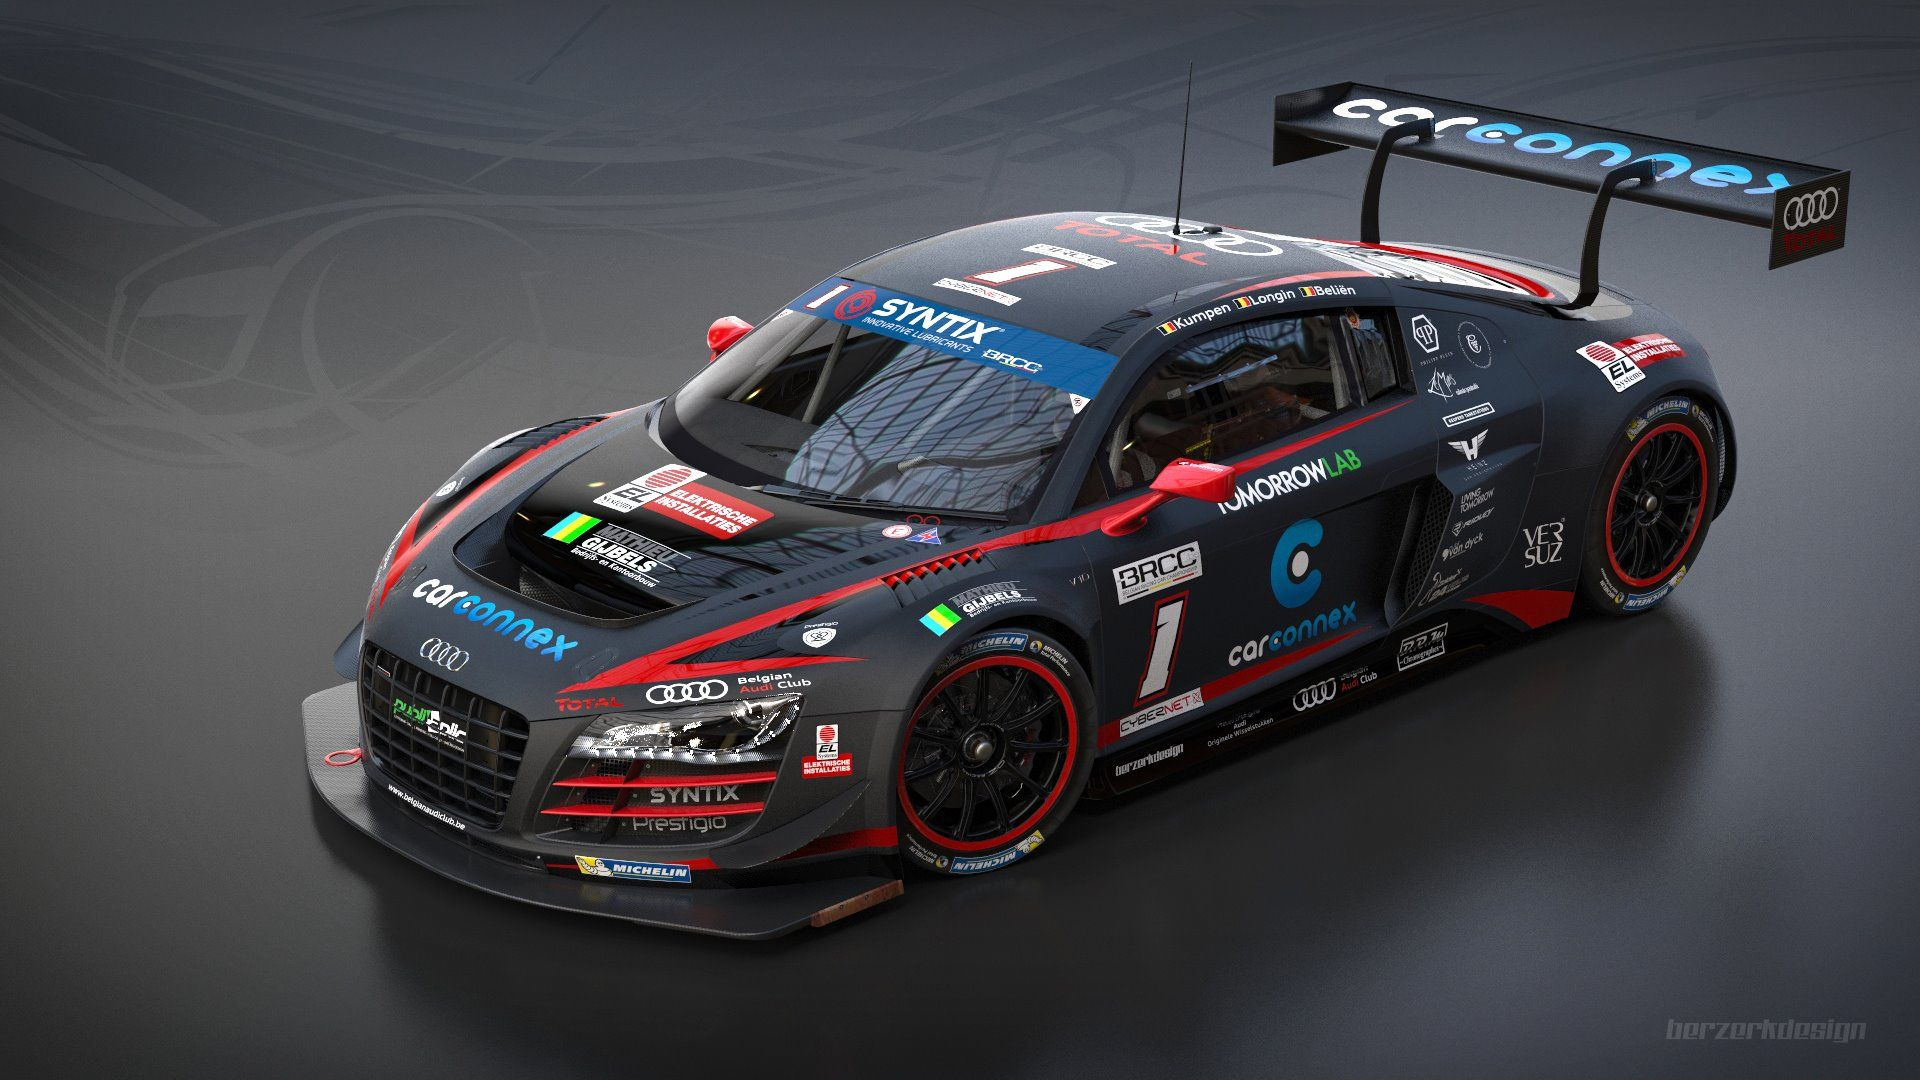 Brcc Pk Carsport Switches To The Audi R8 Lms Ultra Audi